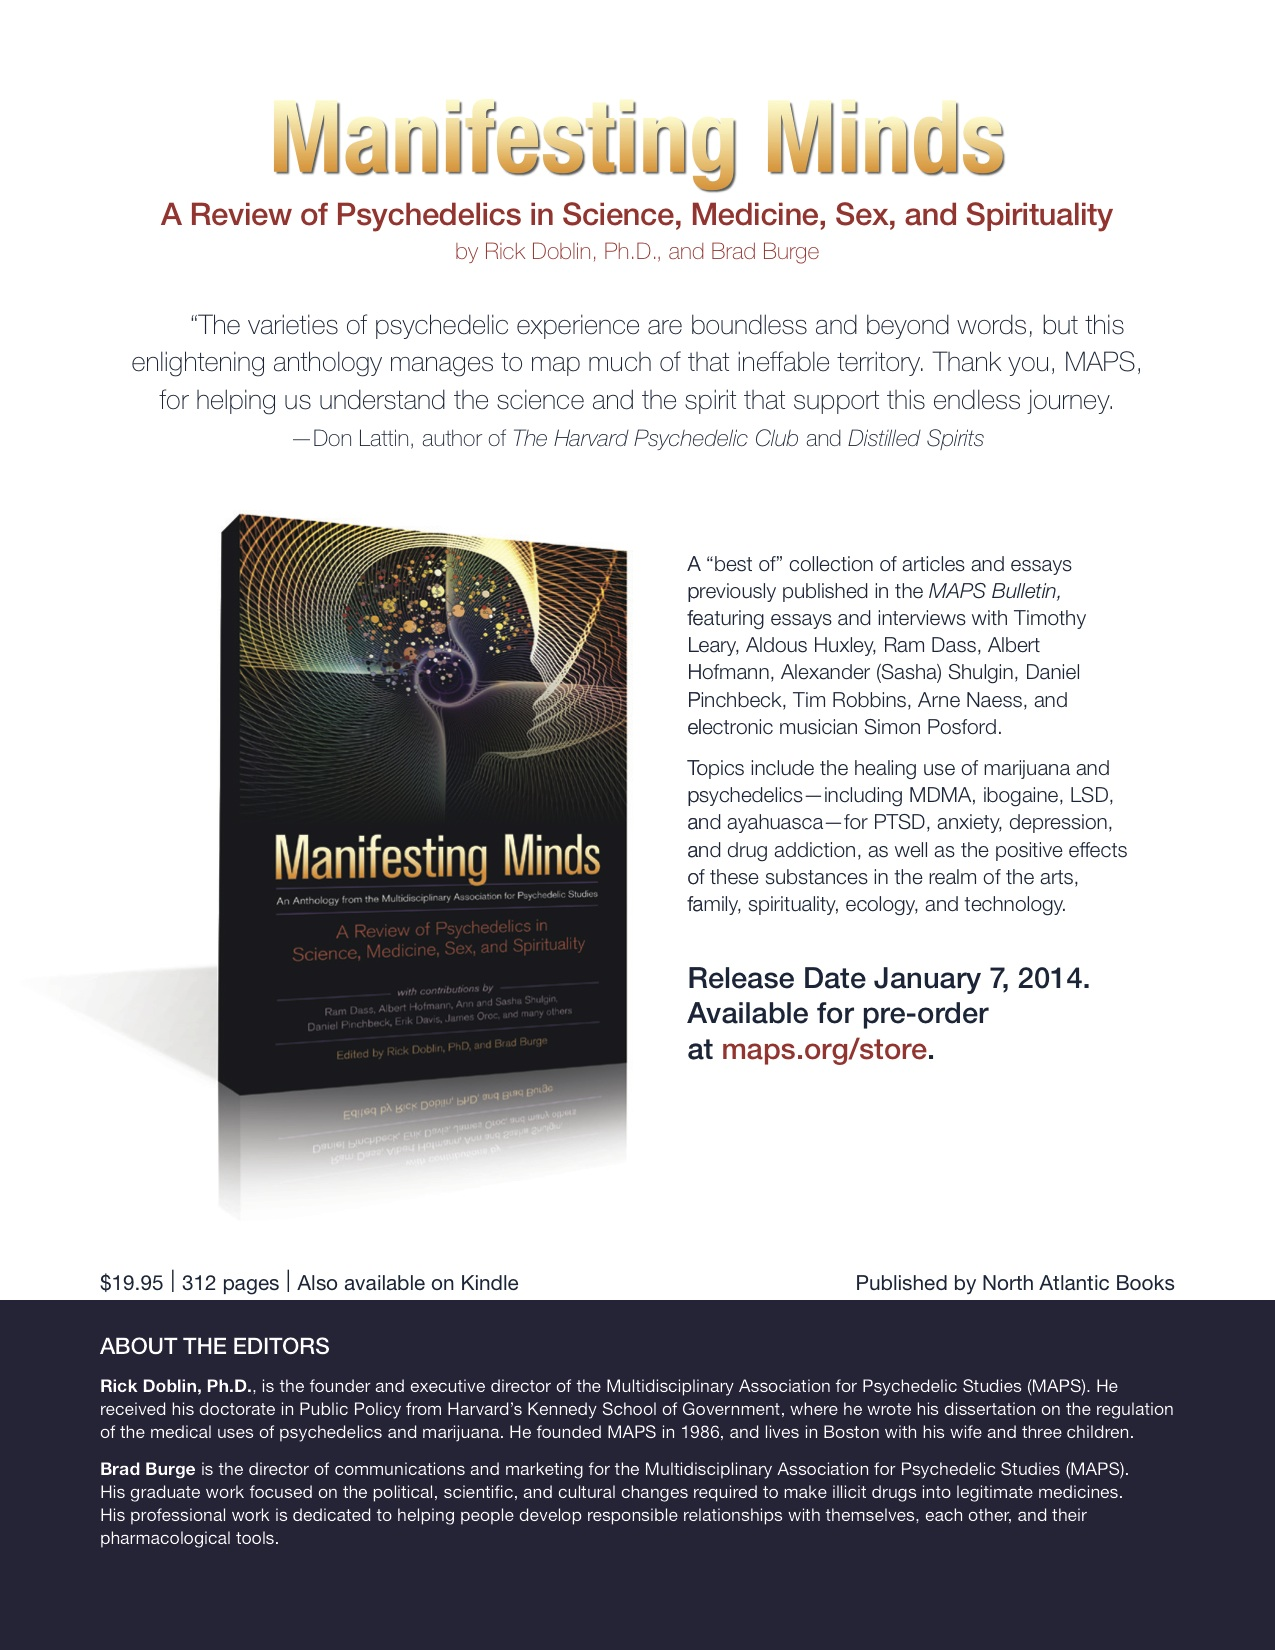 MAPS Bulletin Vol XXIII No 3: Winter 2013 - Inside Cover Image - Psychedelic Art - Now Available: Manifesting Minds: A Review of Psychedelics in Science, Medicine, Sex, and Spirituality by